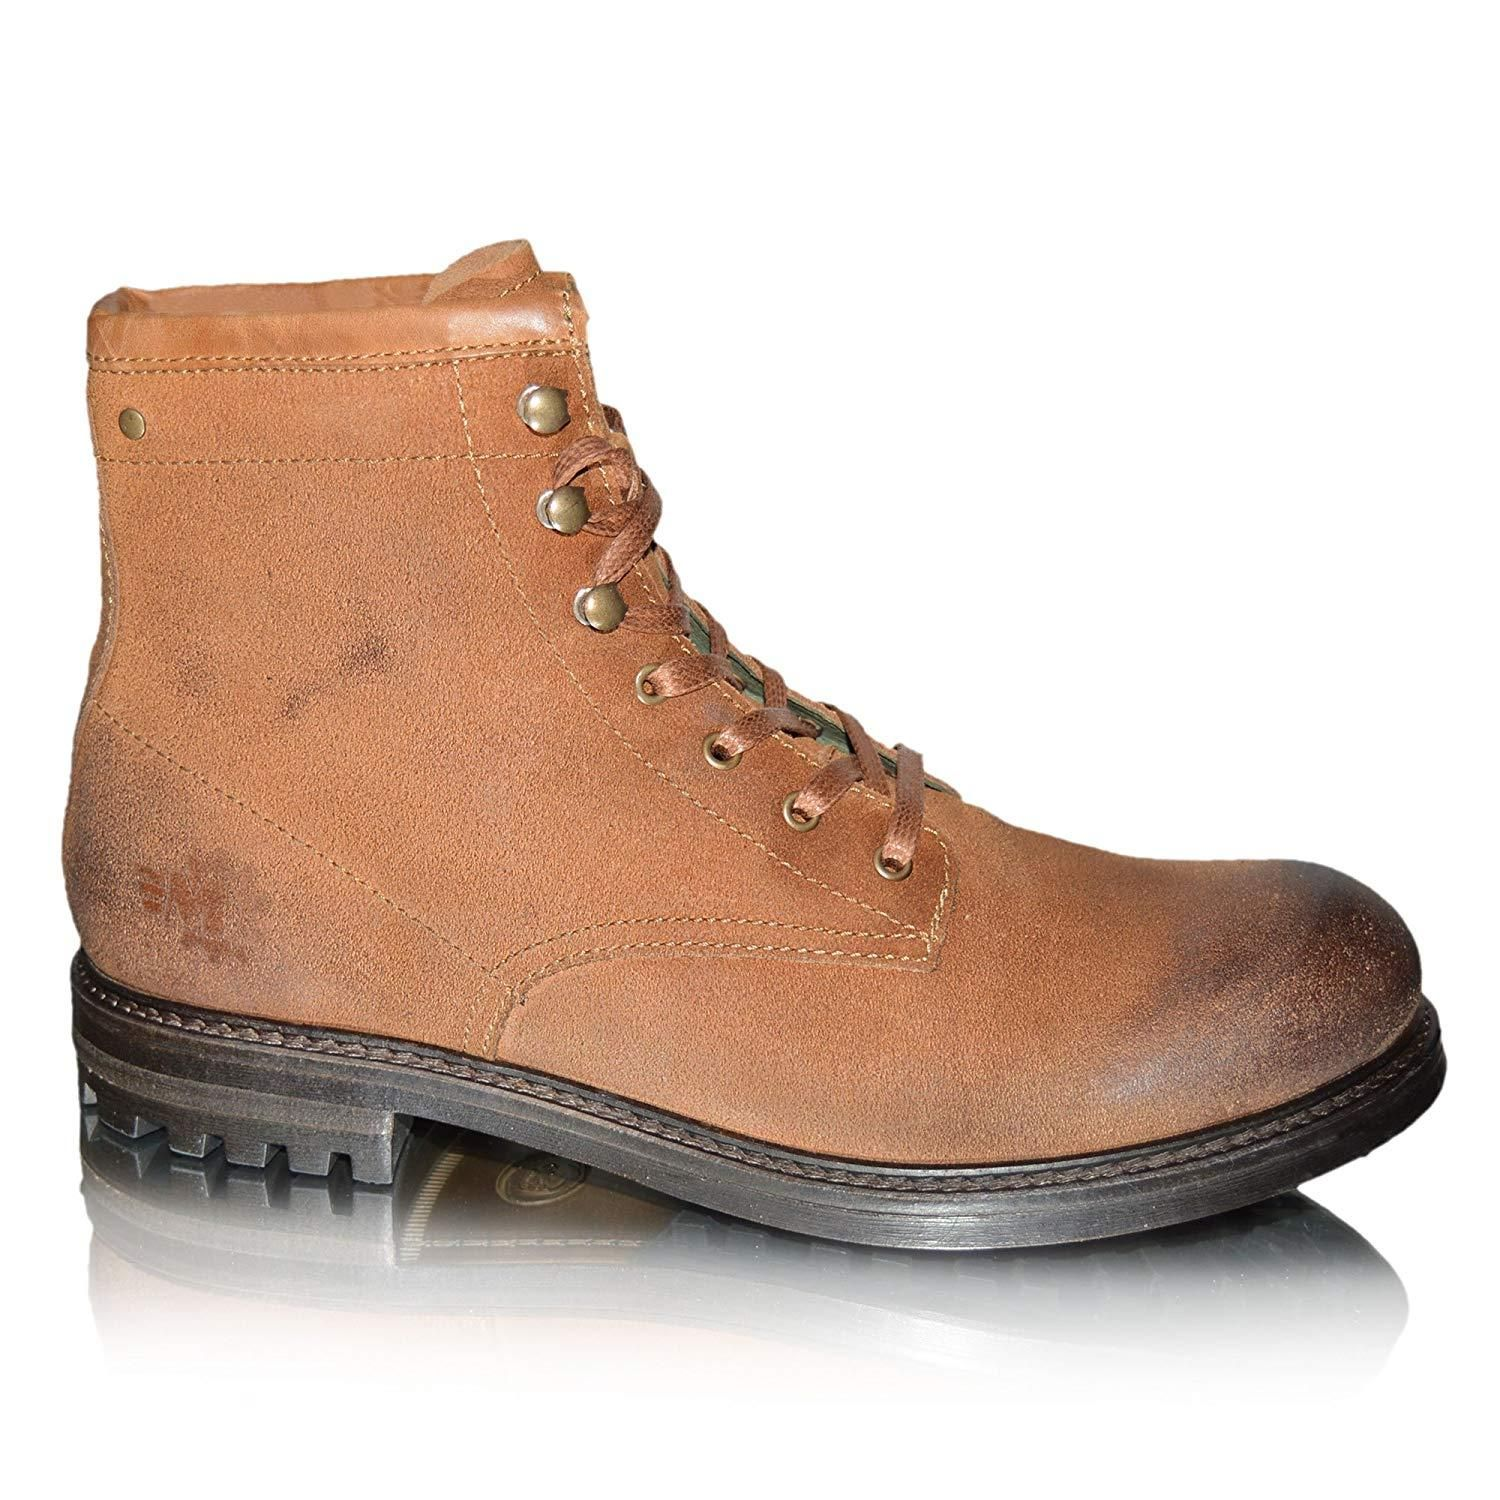 06724513598 Mens Leather Biker Boots Brown Lace Up Military Cowboy Ankle Boots